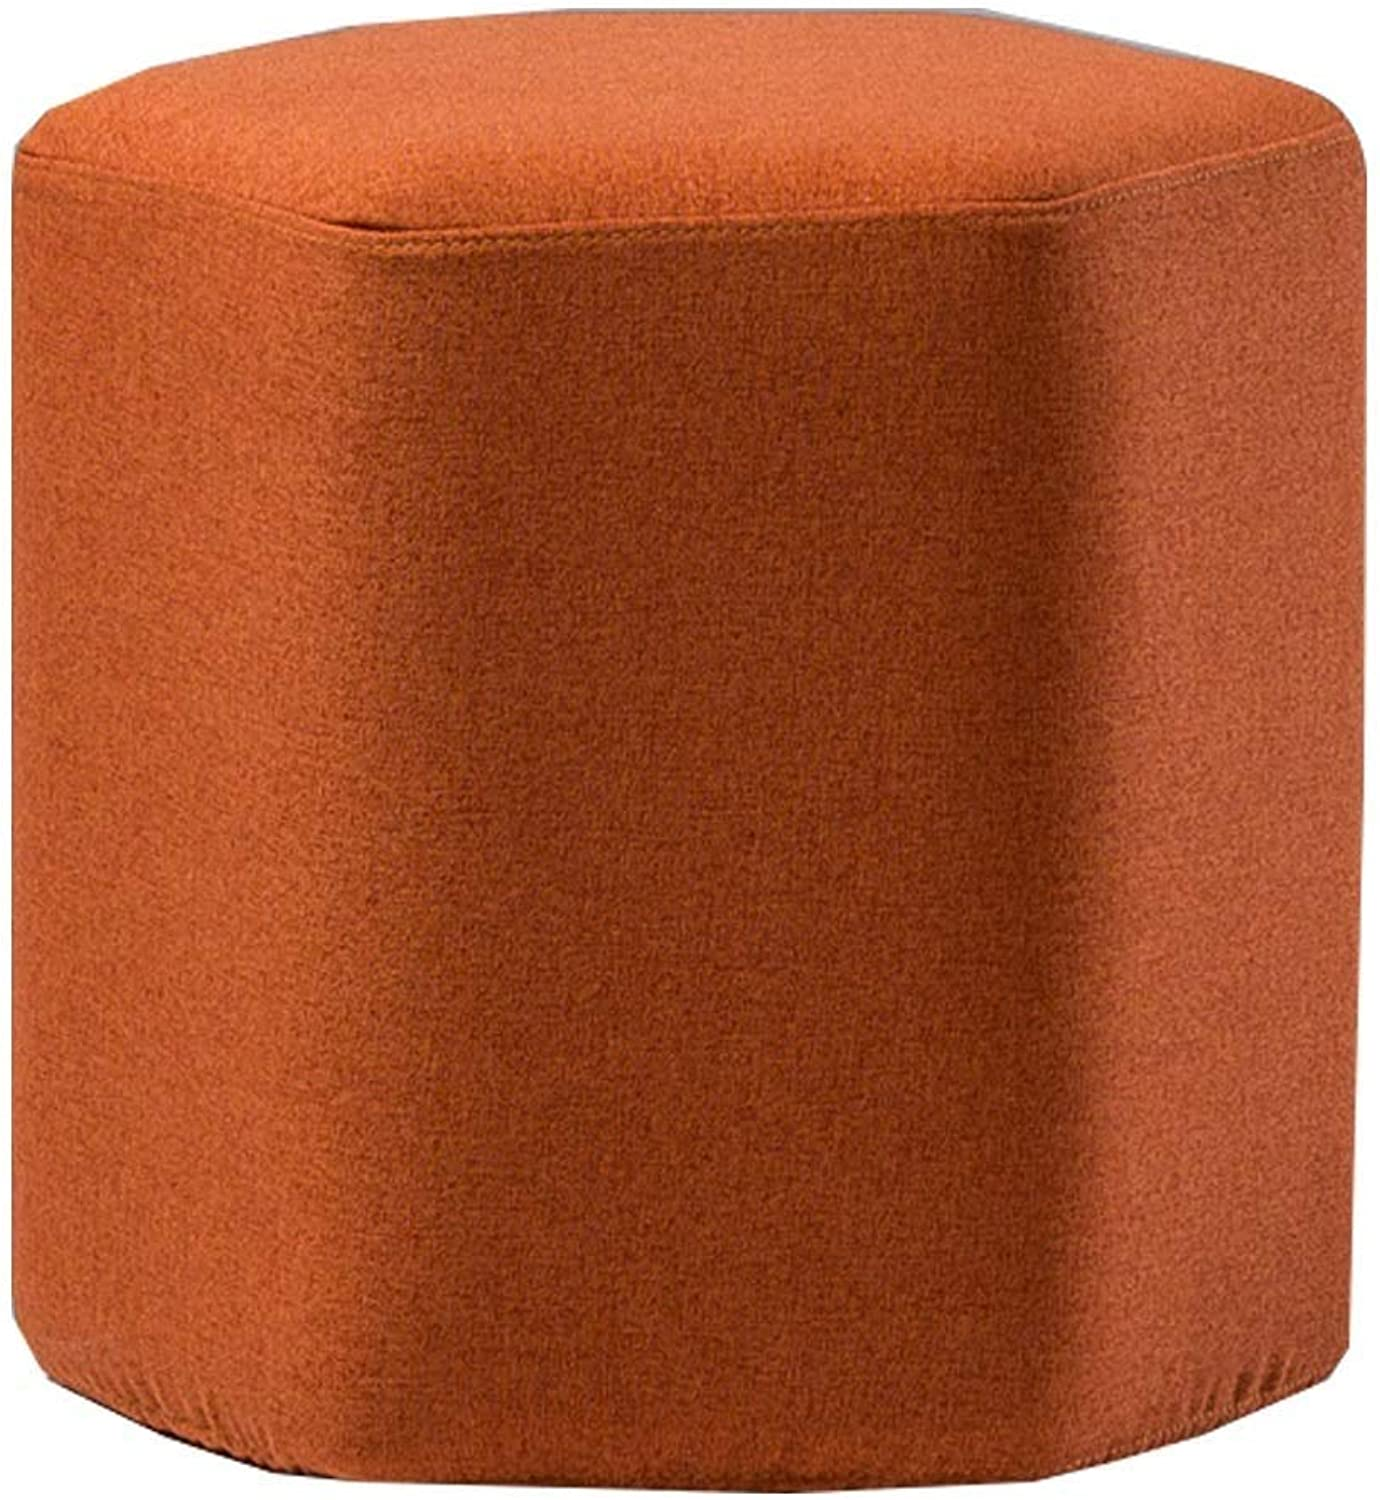 Diamond Stool, DXZ Creative Seat with Anti-Slip Mat, Linen Cushion Anti-Slip Mat Living Room Bedroom Dressing Table   42cm × 40cm orange